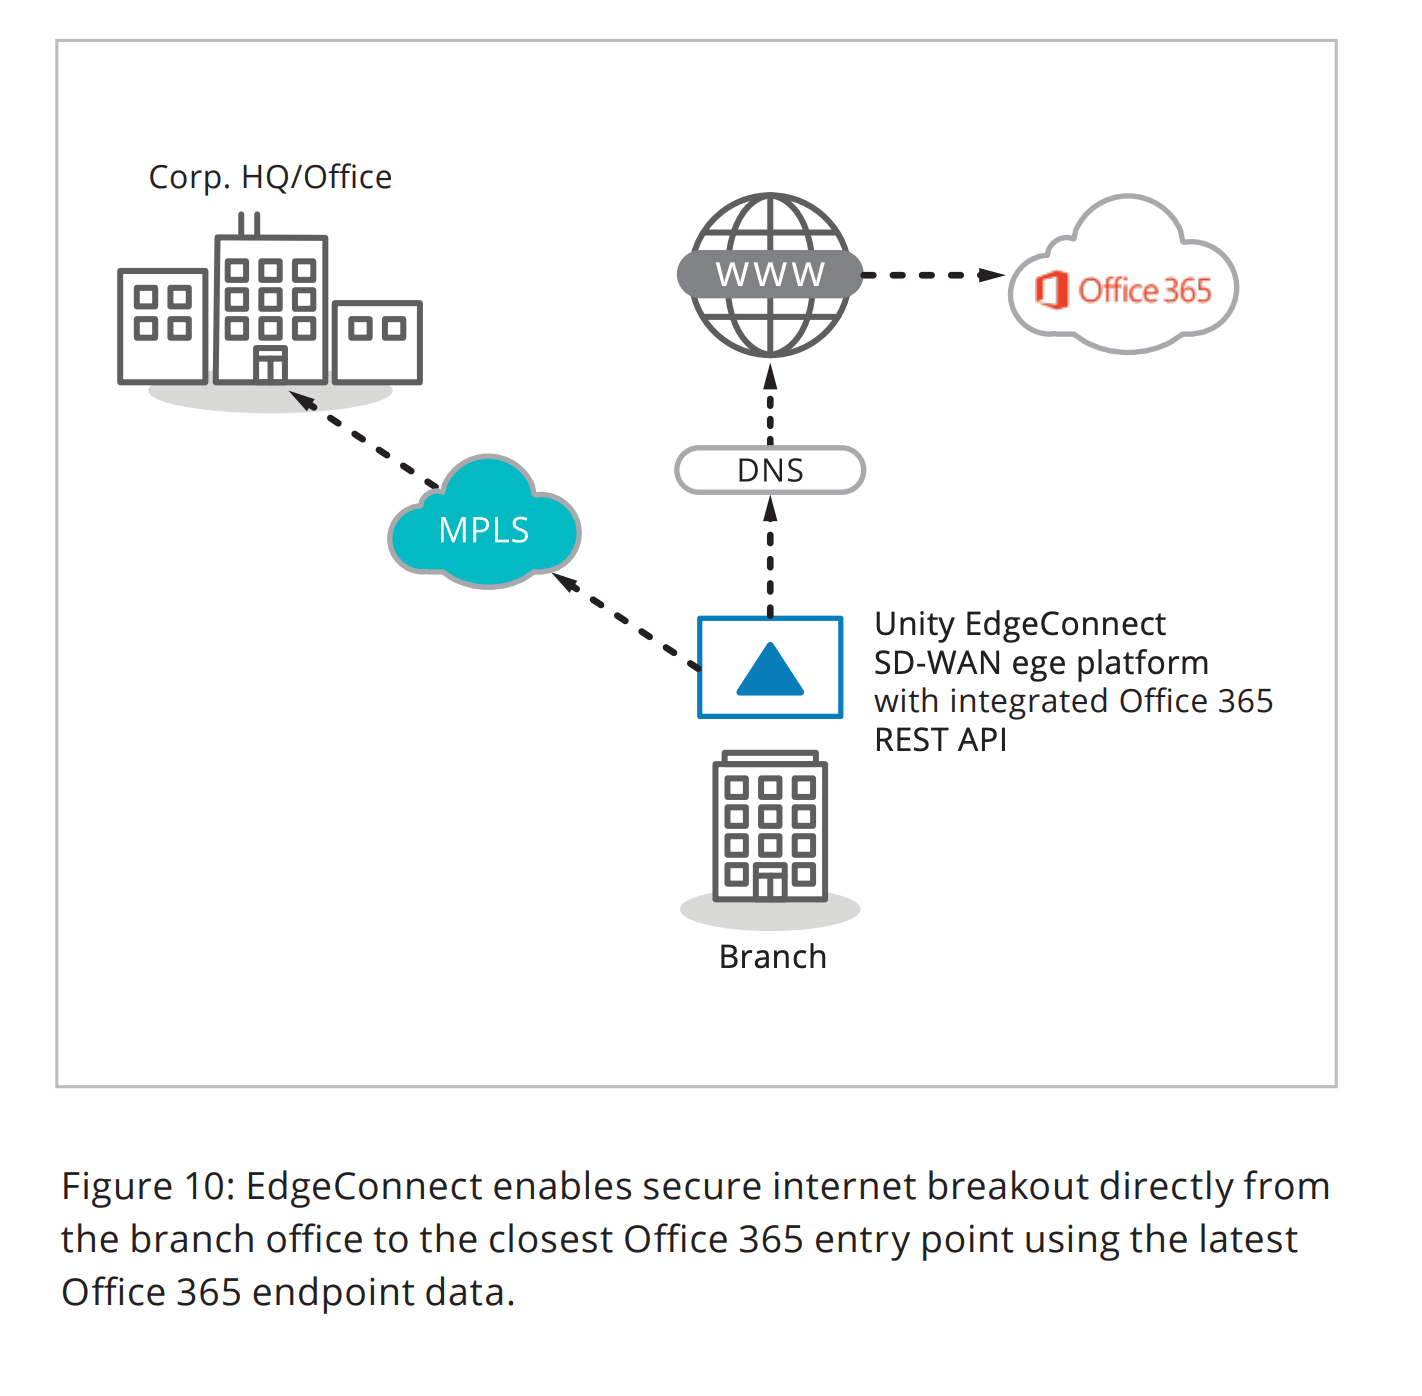 Figure 10: EdgeConnect enables secure internet breakout directly from the branch office to the closest Office 365 entry point using the latest Office 365 endpoint data.